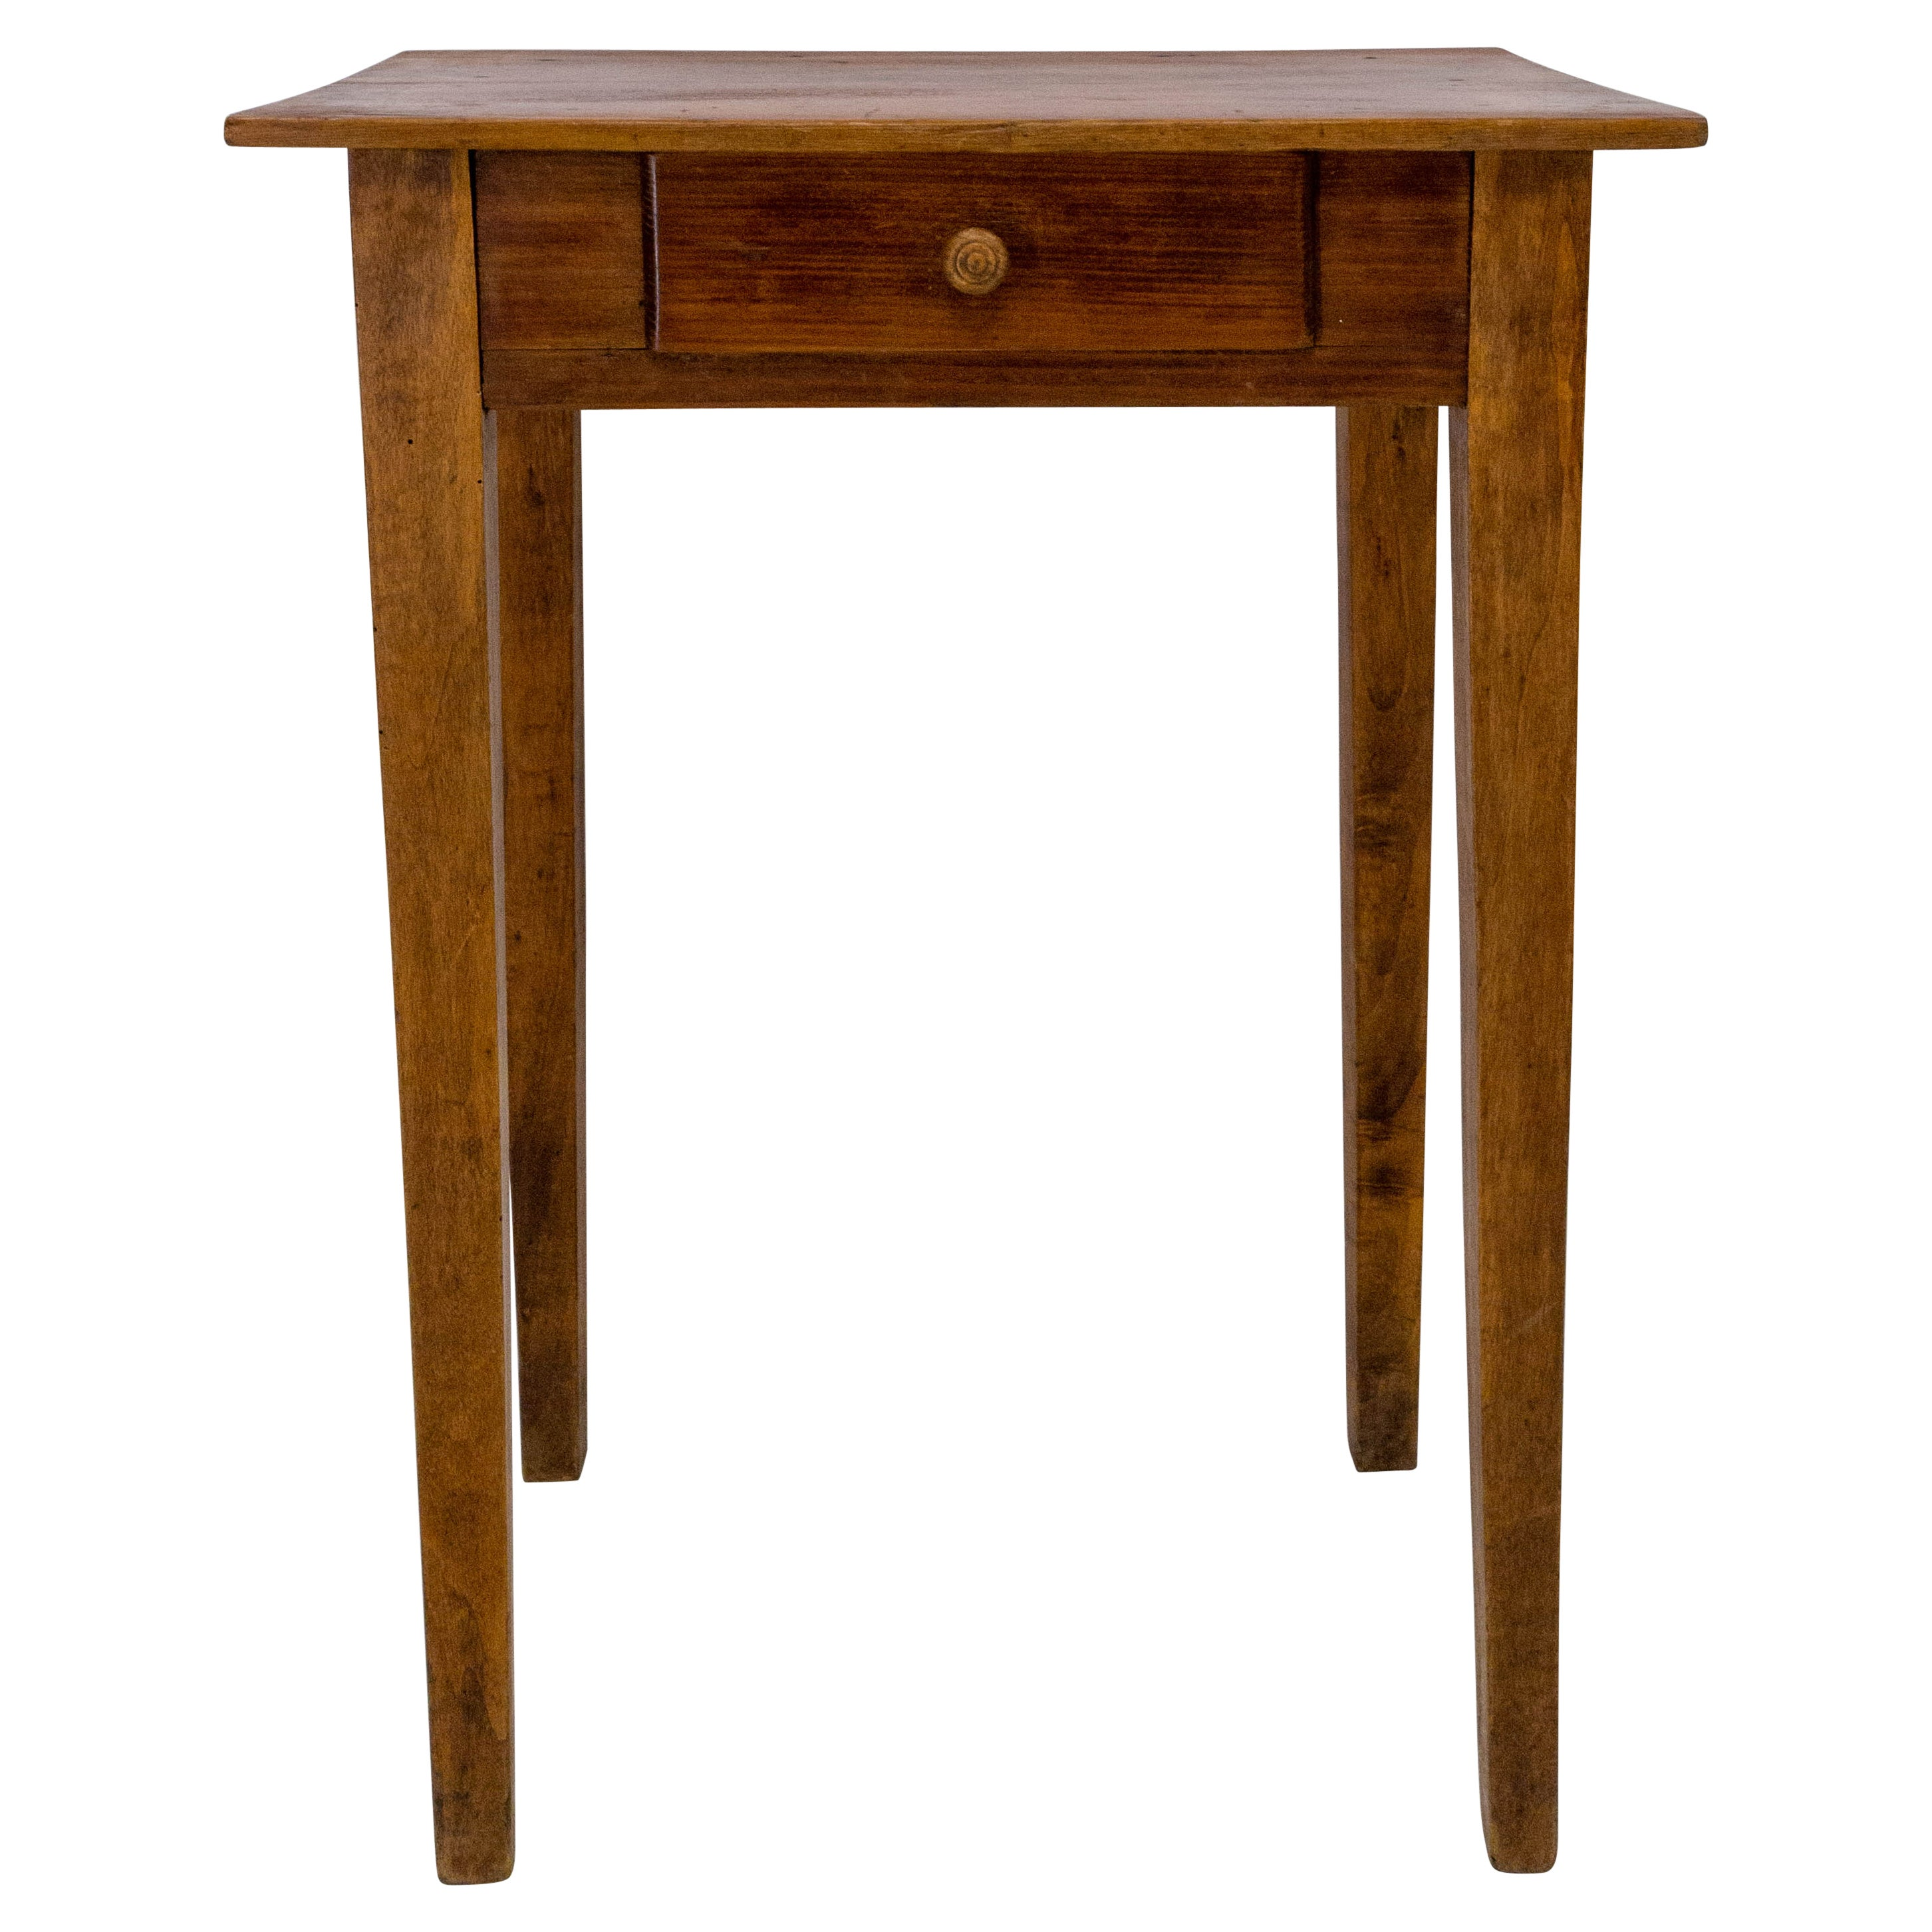 Side Table or End Table with Drawer French, Early 20th Century